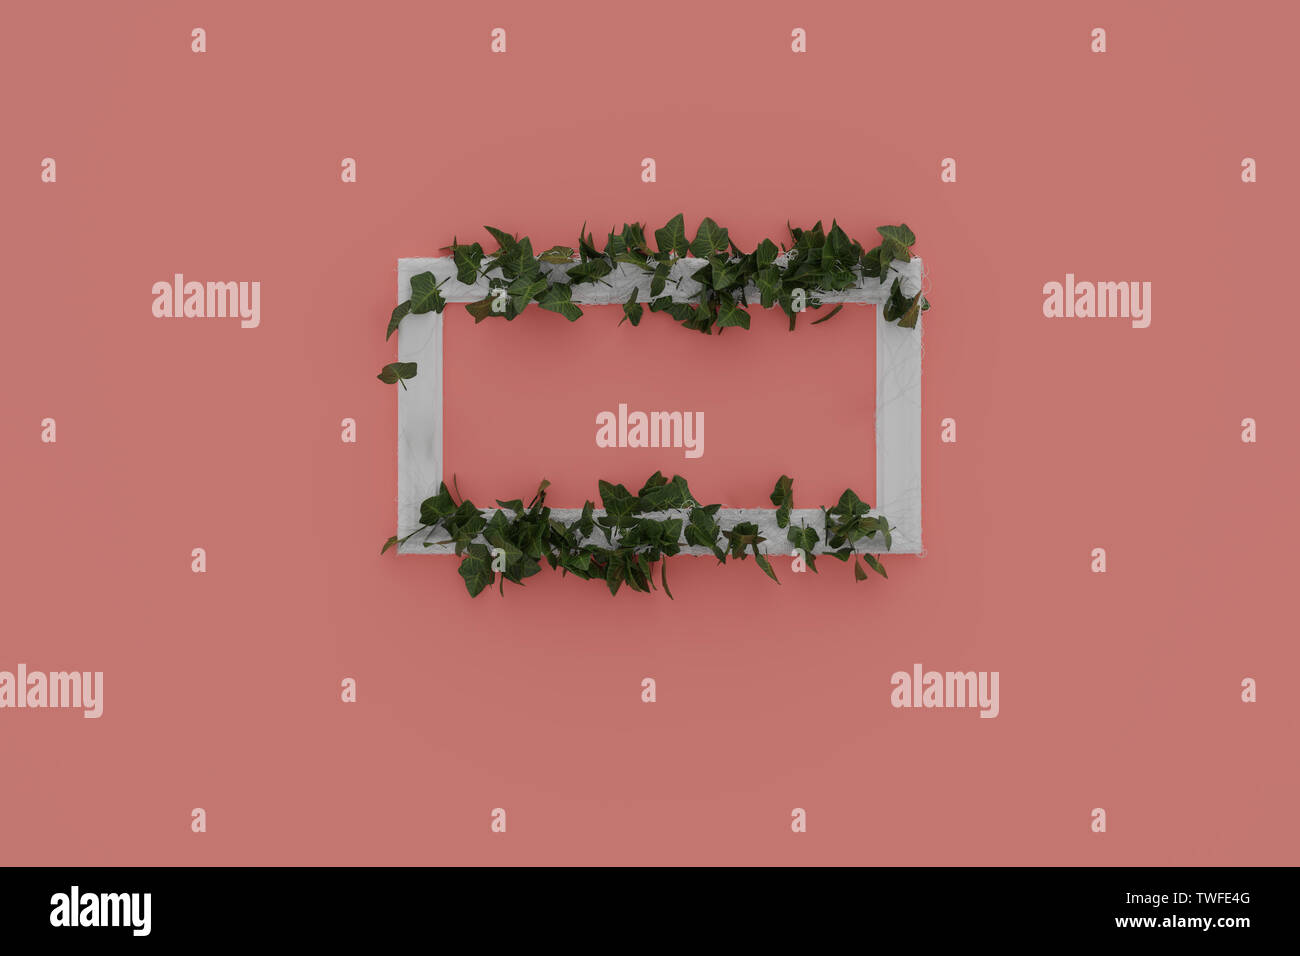 3d rendering of white picture frame laying on pink background and embraced with ivy leaves - Stock Image